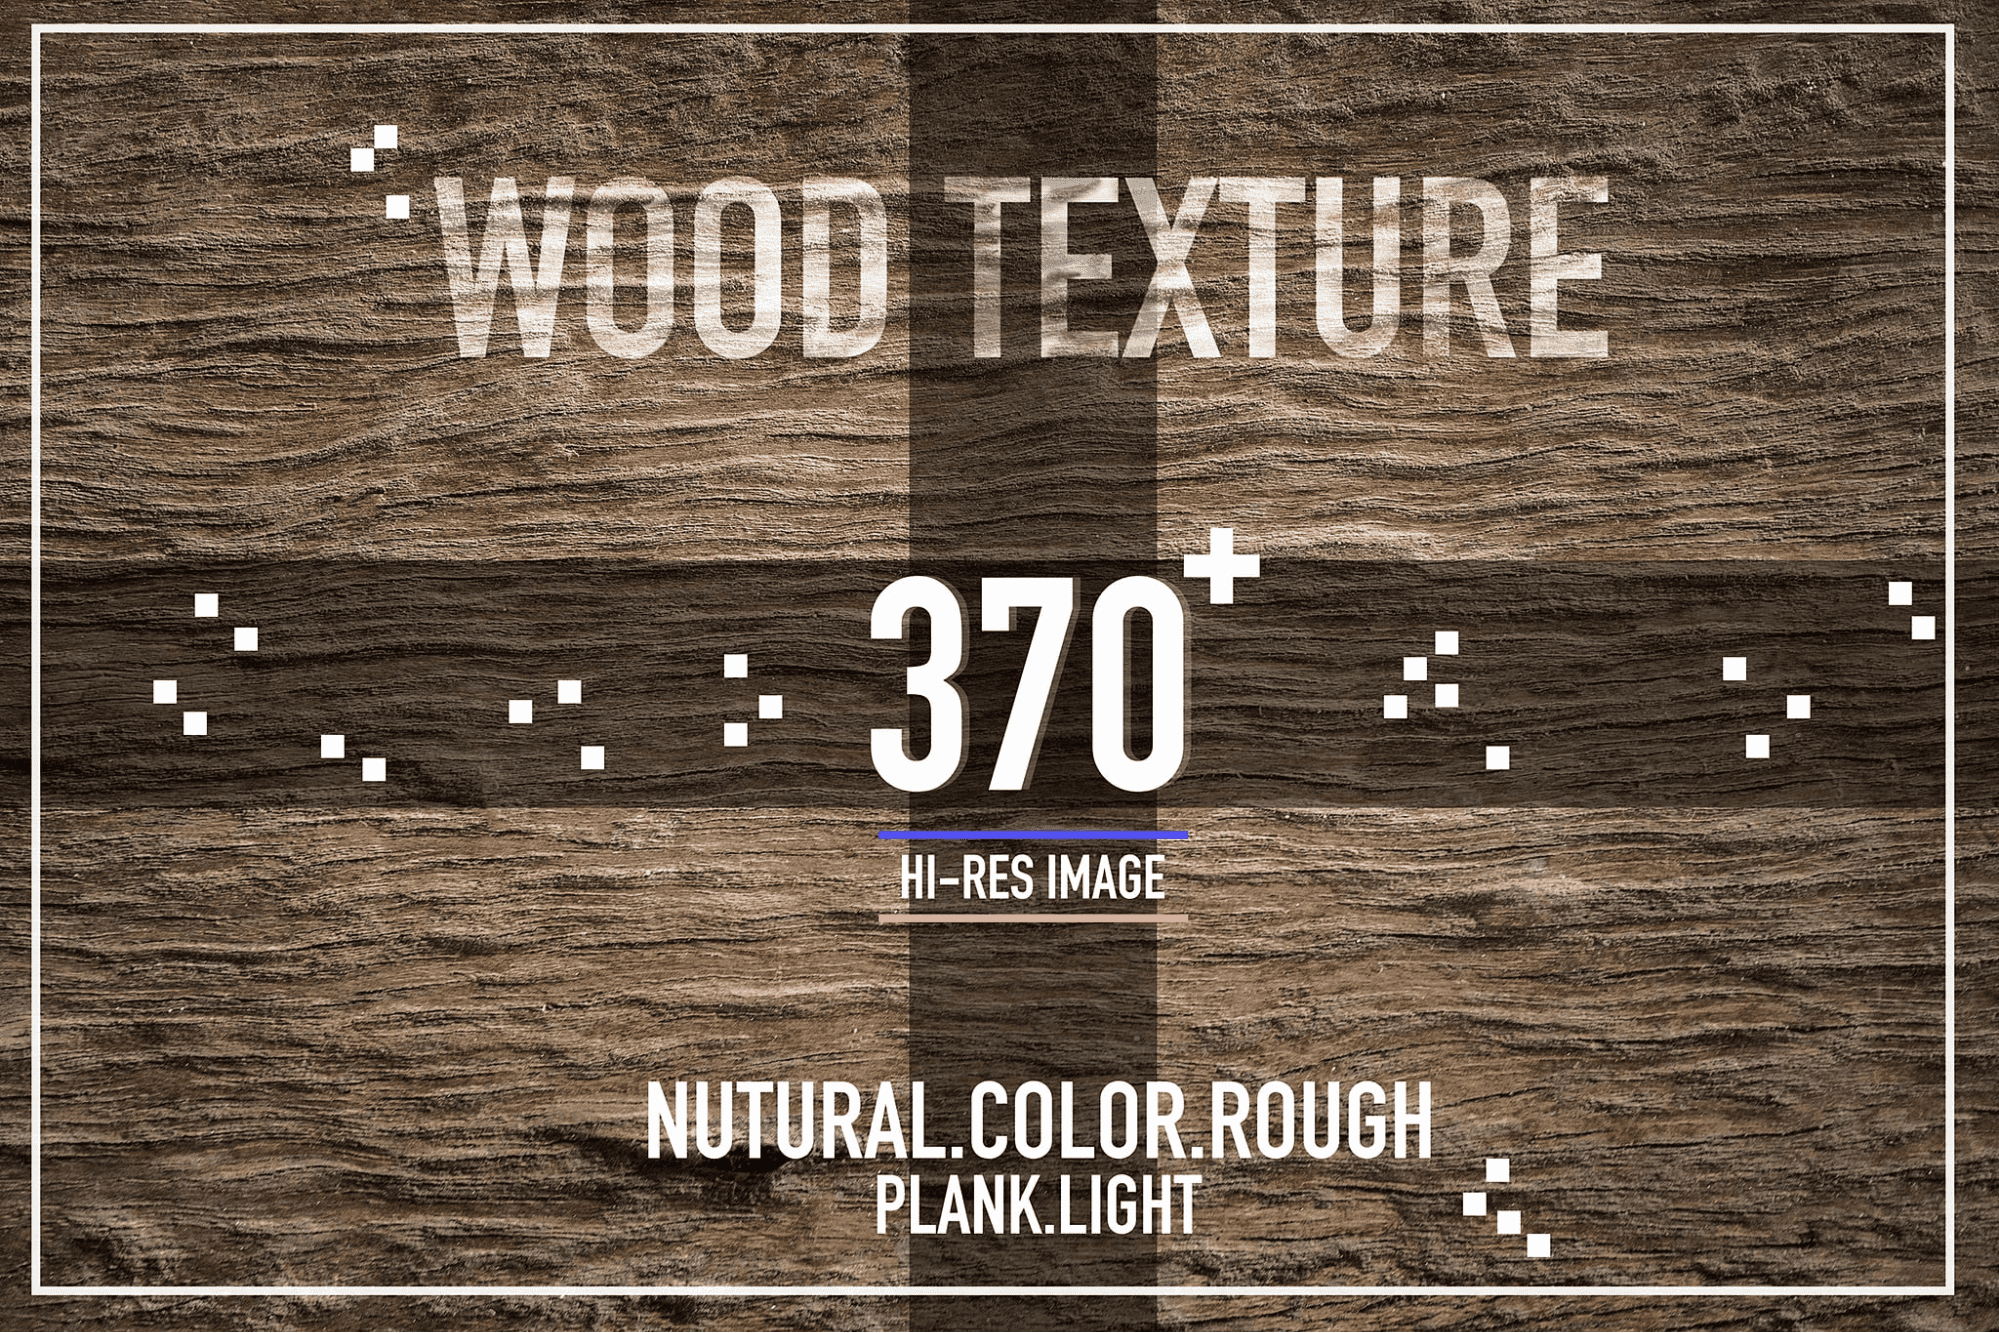 200+ Best Wood Texture Images in 2020: Free and Premium Wood Background Pictures - image2